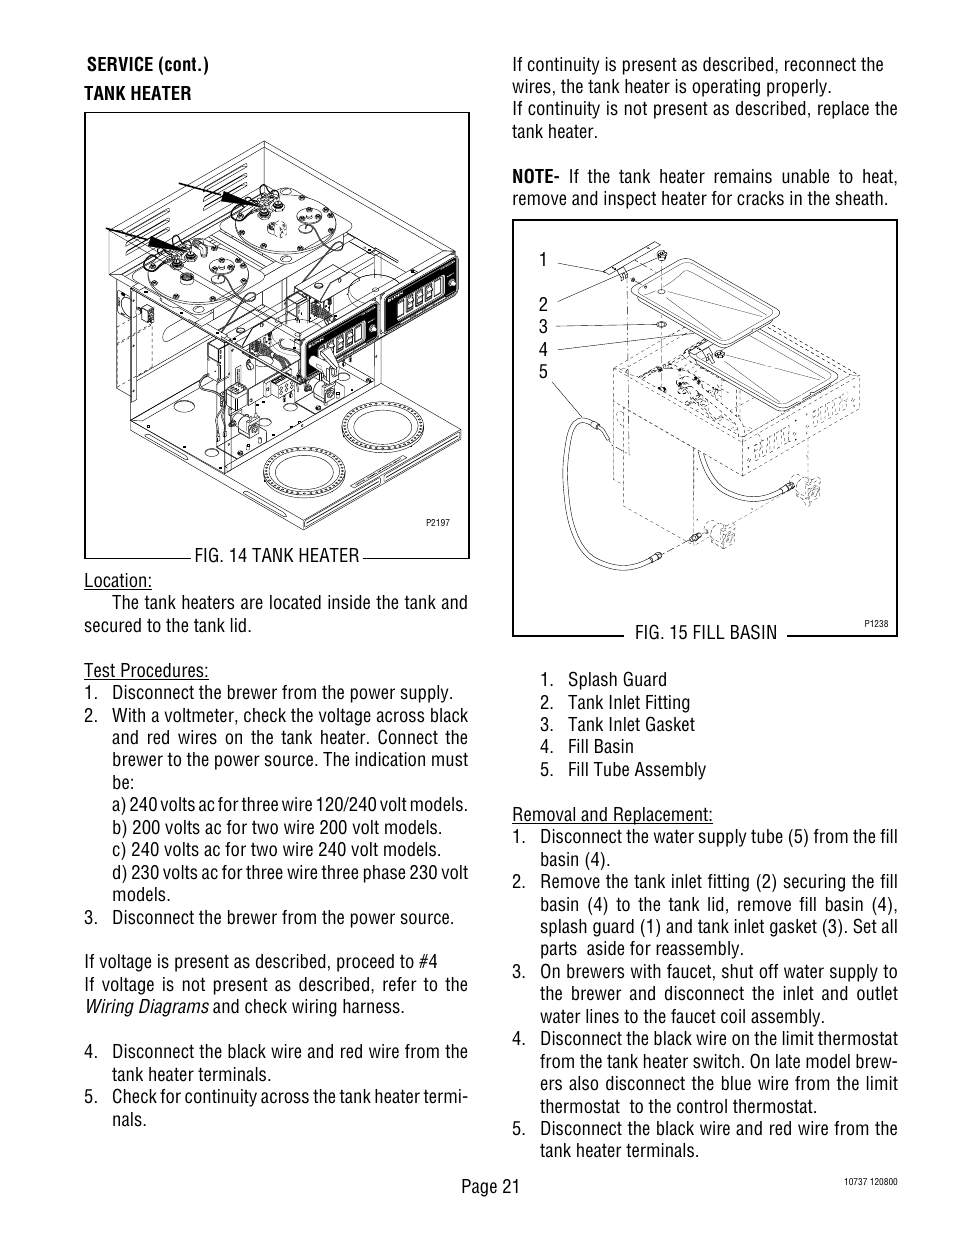 Bunn Cw Series Wire Diagram Explained Wiring Diagrams Hs22 Balboa Circuit Board Cwtf Twin Aps User Manual Page 21 34